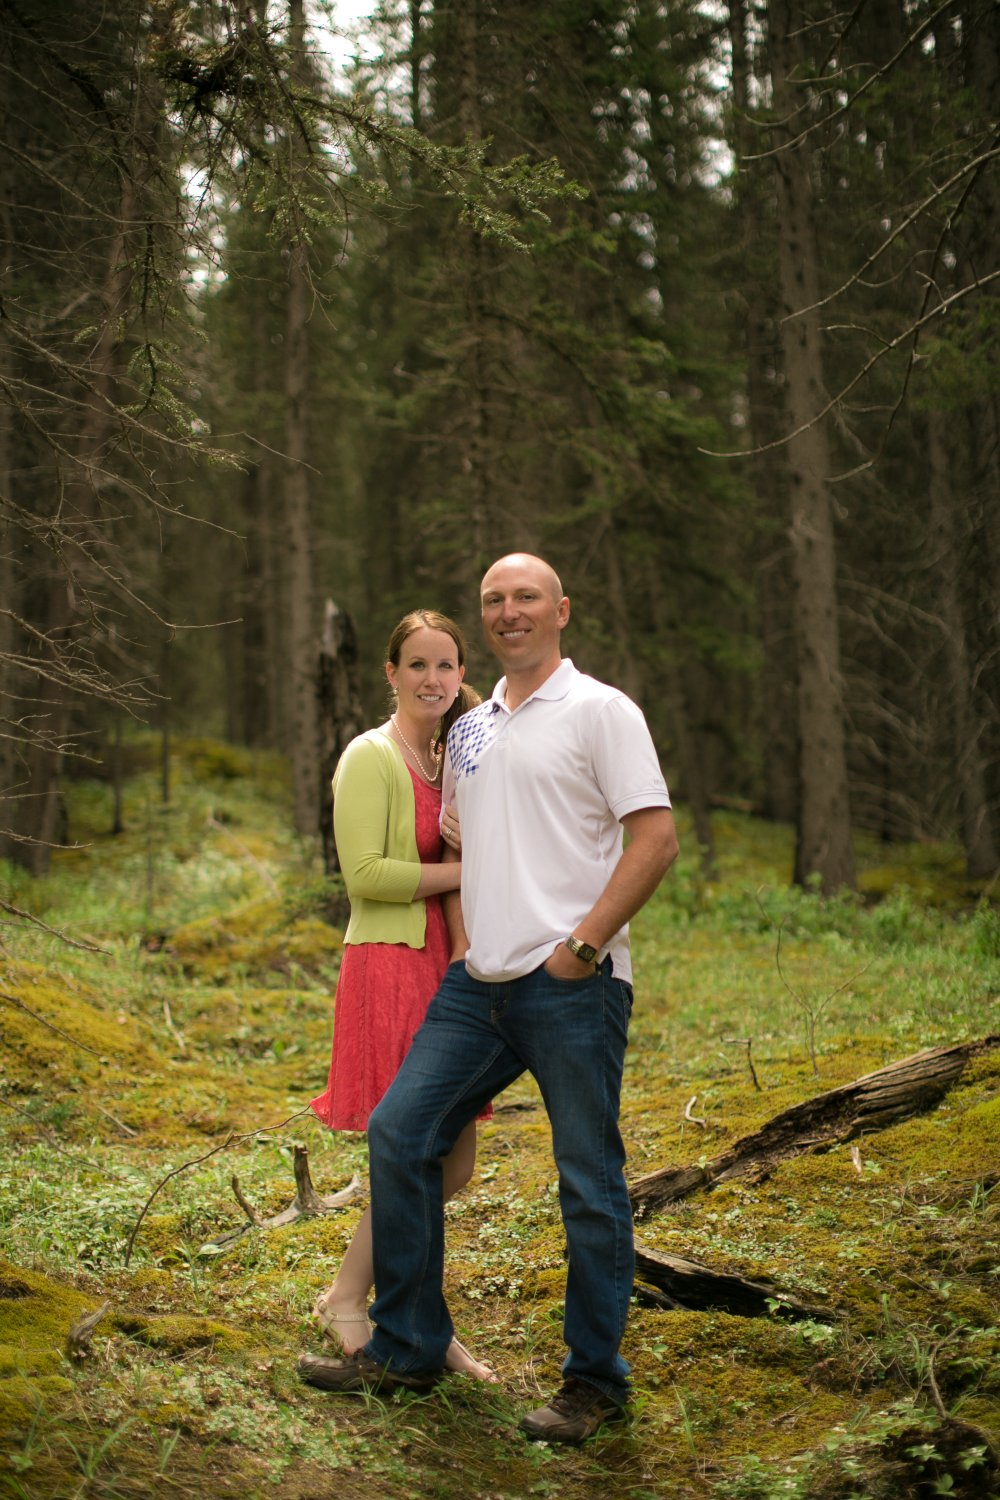 JF Hannigan Photography Engagement Session: Elise and Scott: a morning in the mountains 4